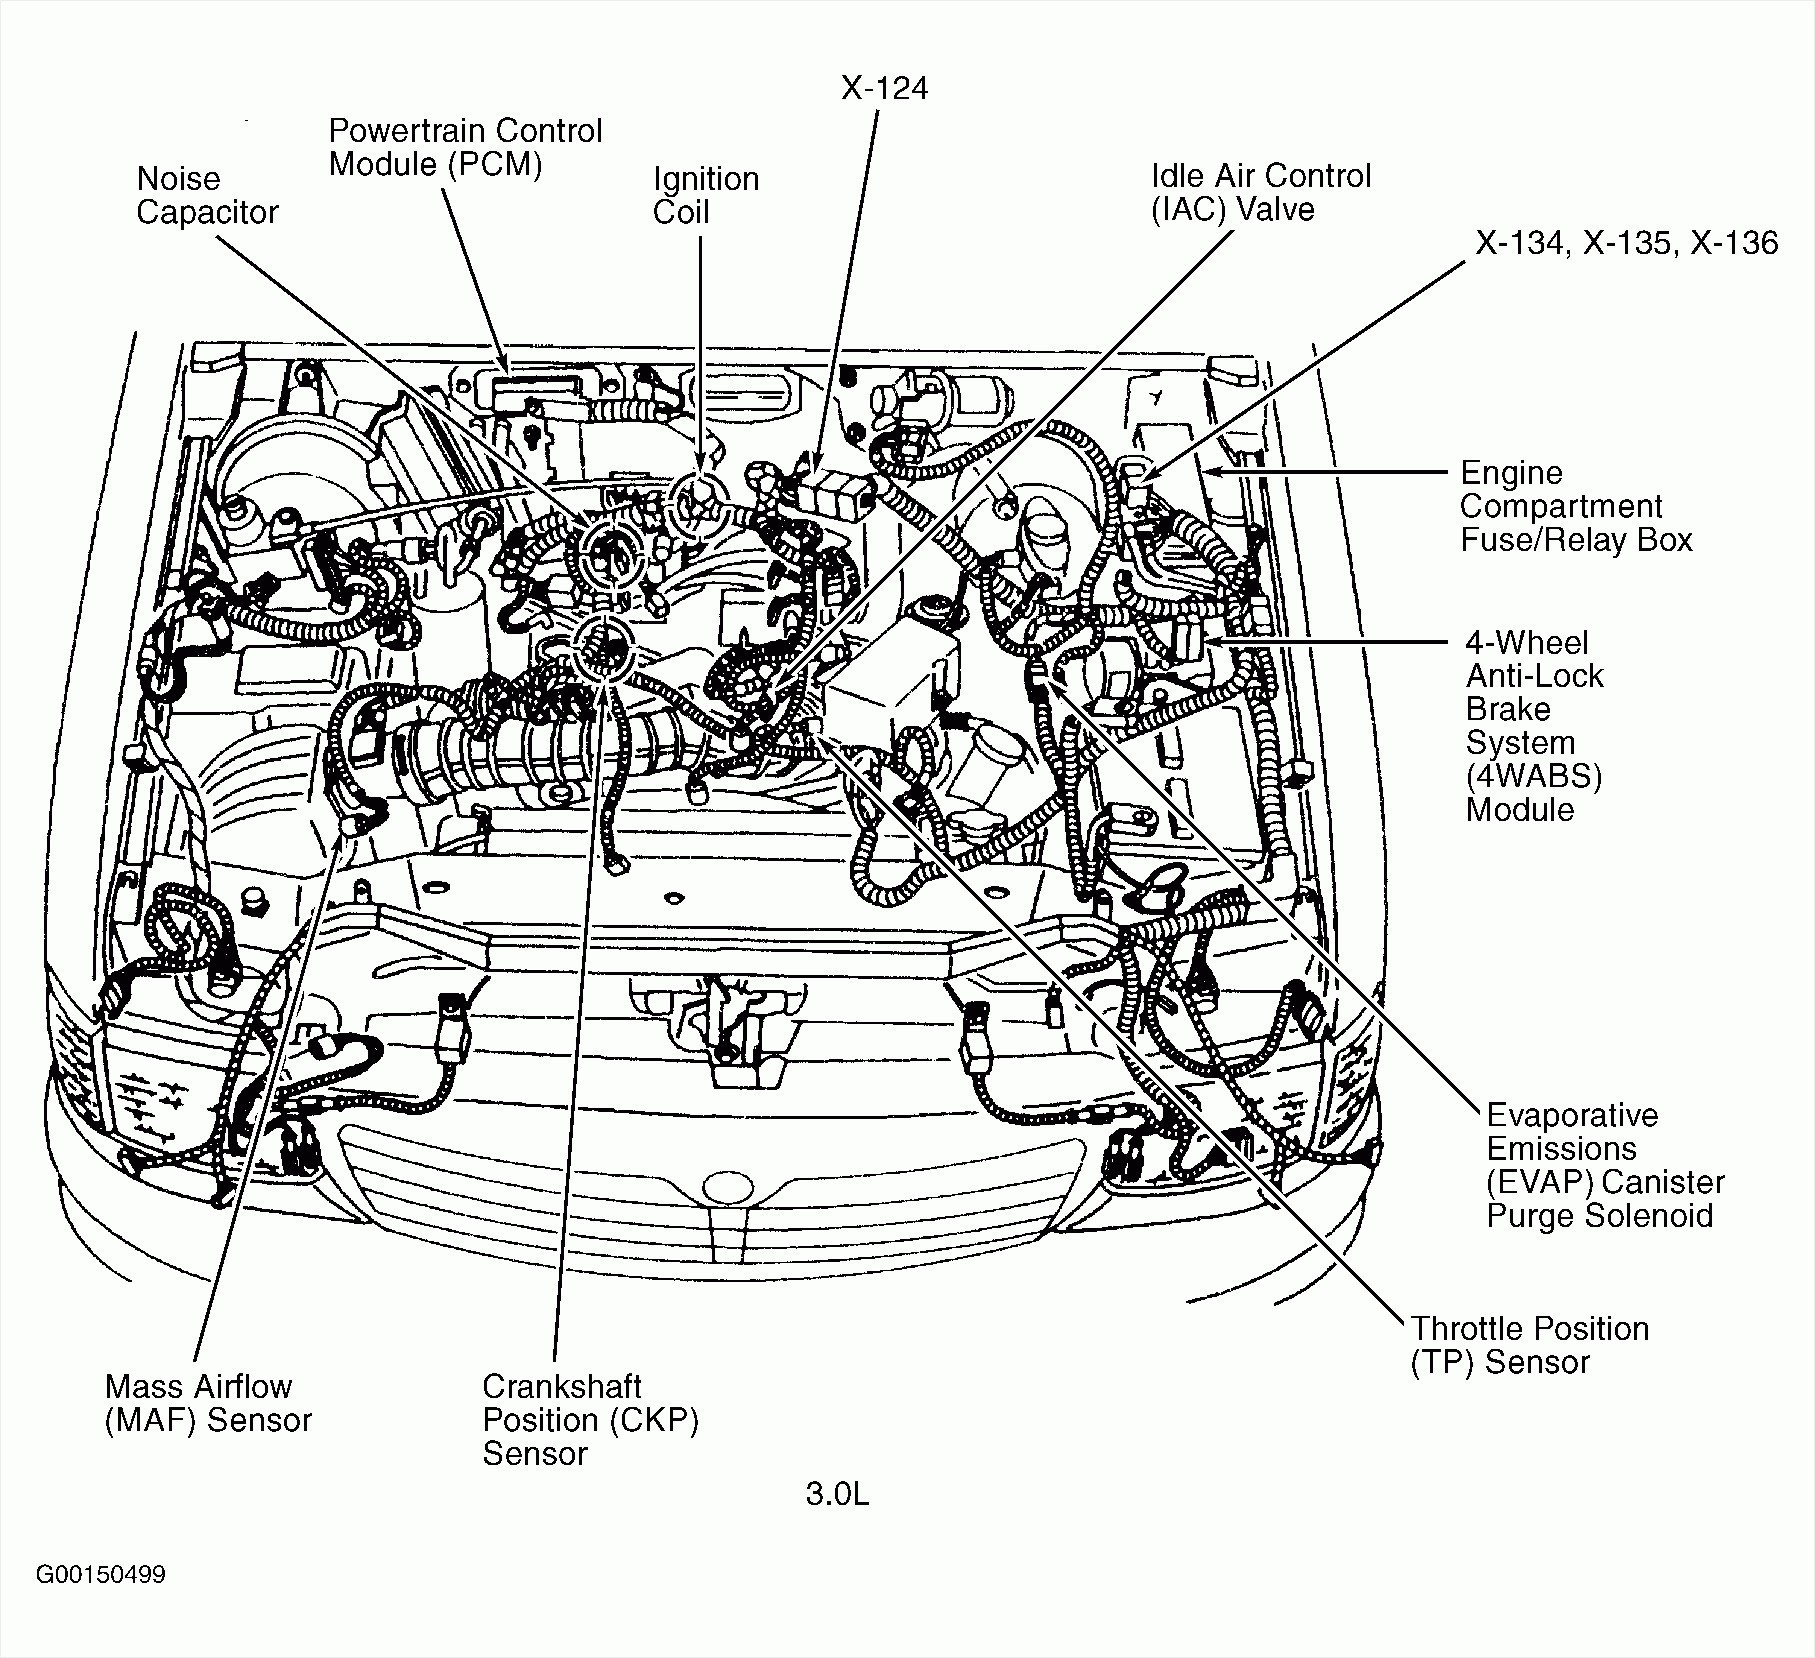 hight resolution of mx5 engine bay diagram my wiring diagram volkswagen jetta fuse box diagram 2013 volkswagen passat se